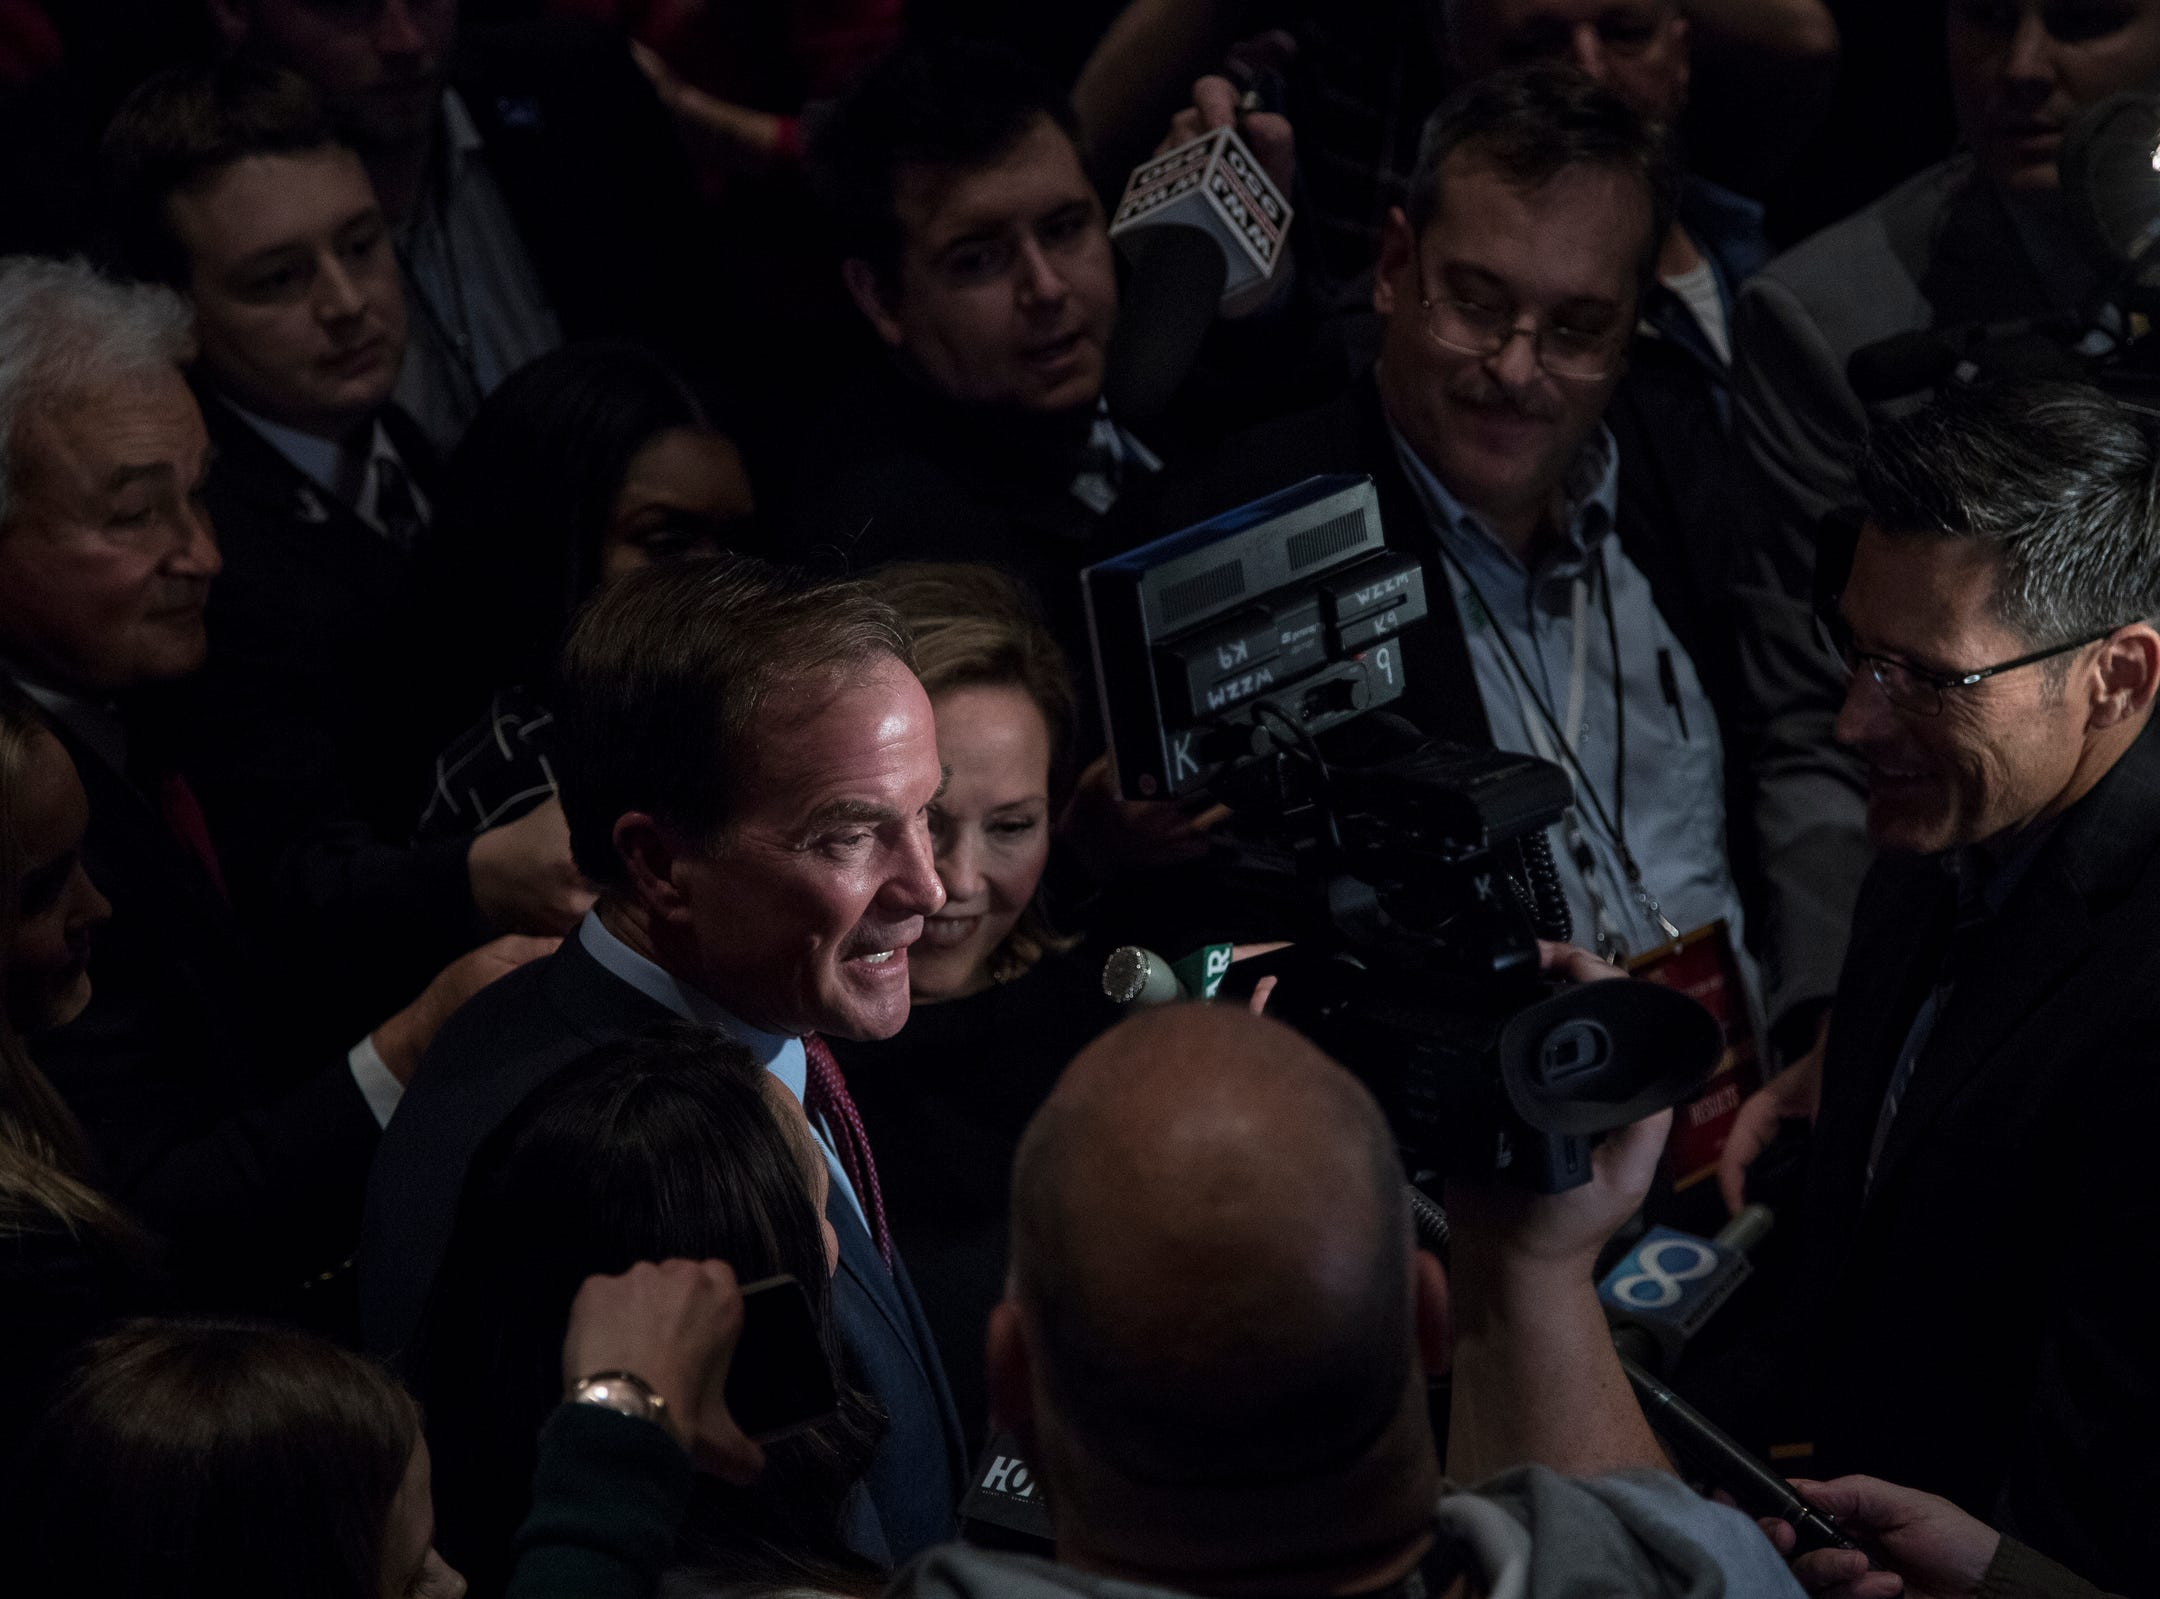 Republican gubernatorial candidate Bill Schuette, center, next to his wife Cynthia Grebe talks to media members after his concession speech at the Lansing Center in Lansing, Tuesday, Nov. 6, 2018.